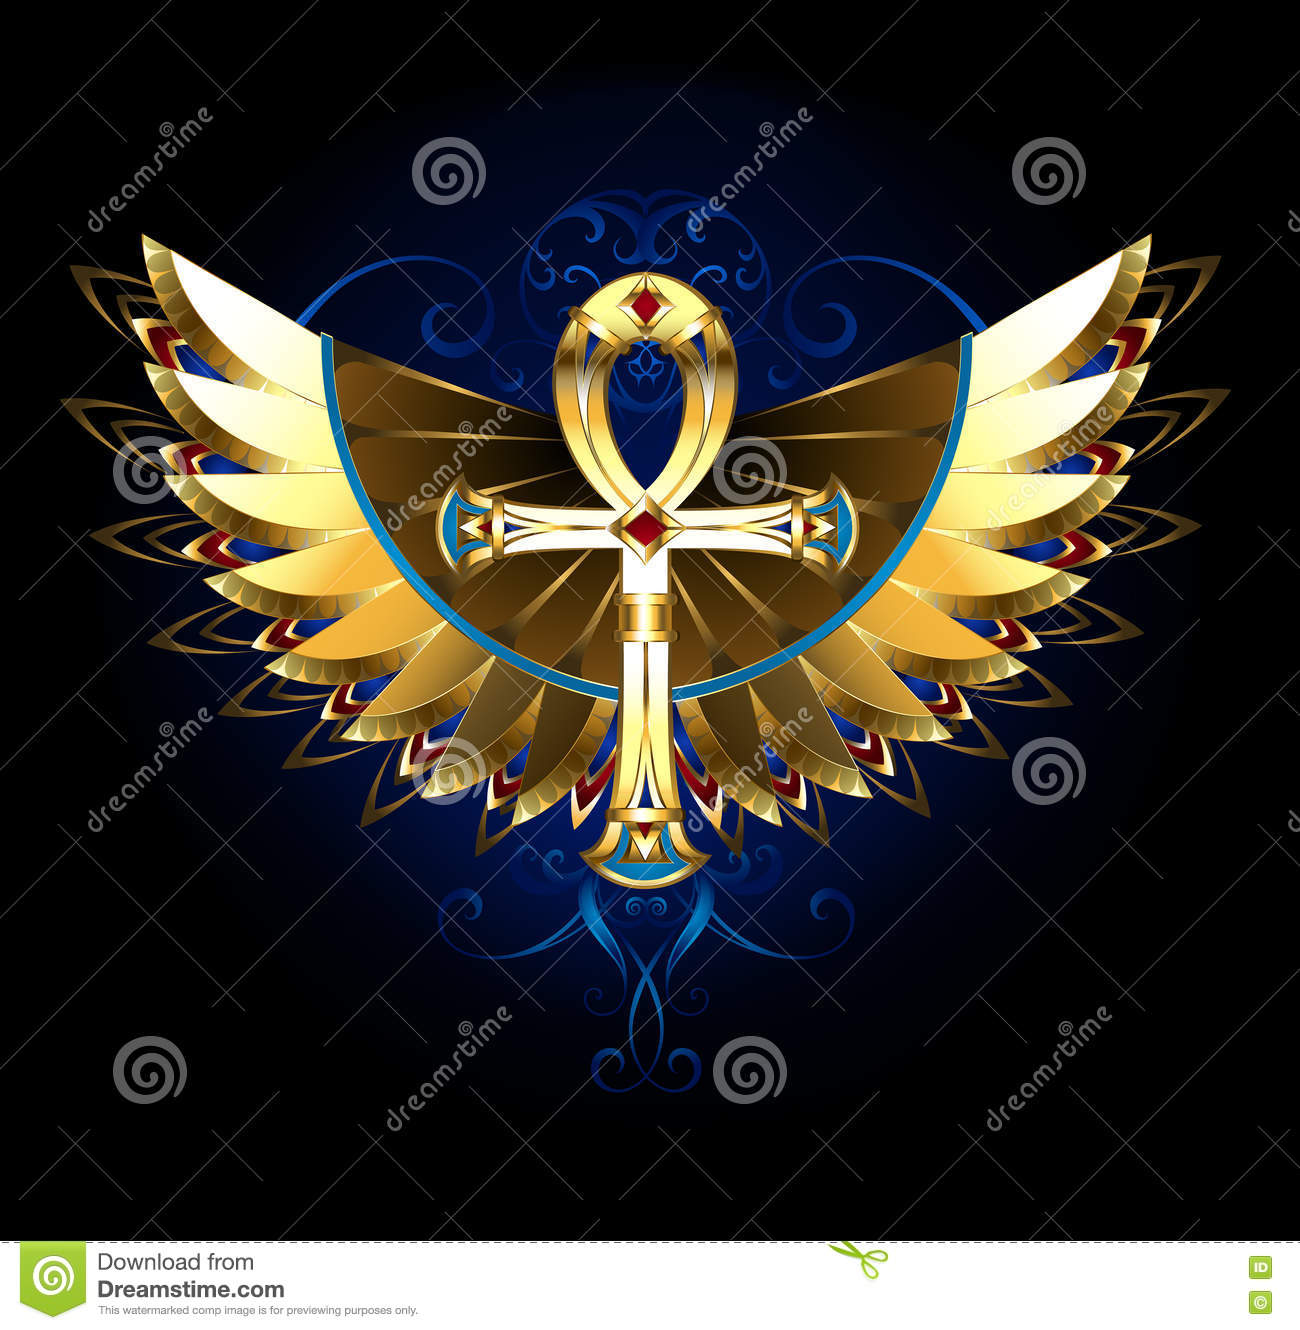 Gold Ankh With Wings Stock Vector Illustration Of Fantasy 78177372